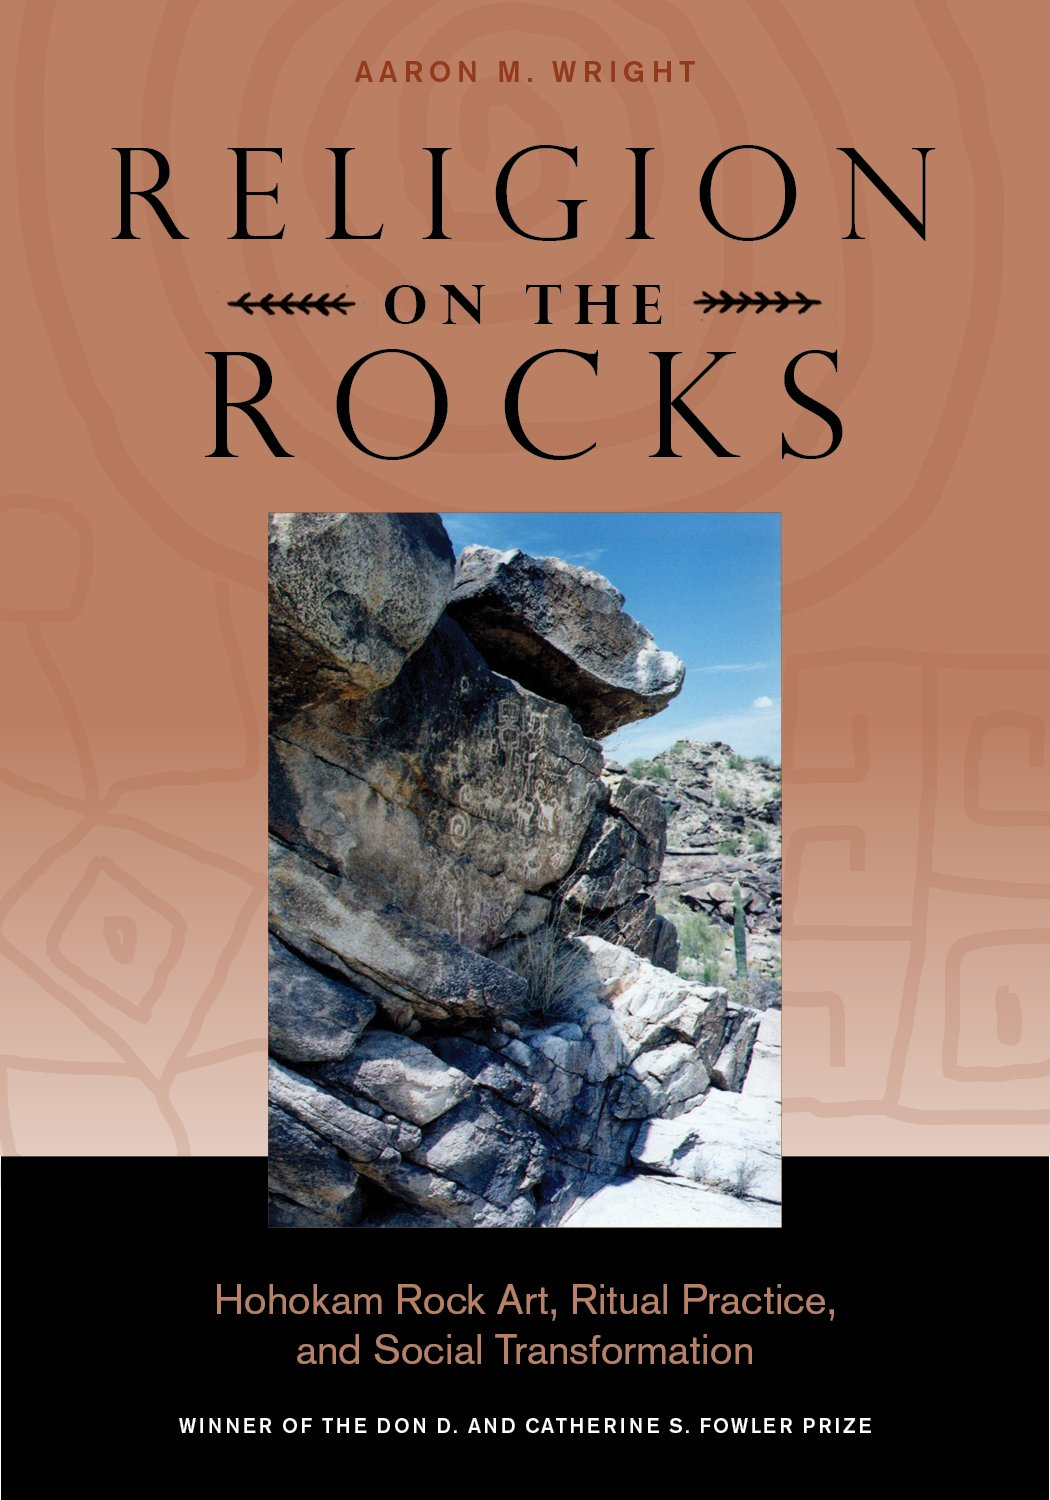 Religion on the Rocks: Hohokam Rock Art, Ritual Practice, and Social Transformation ebook